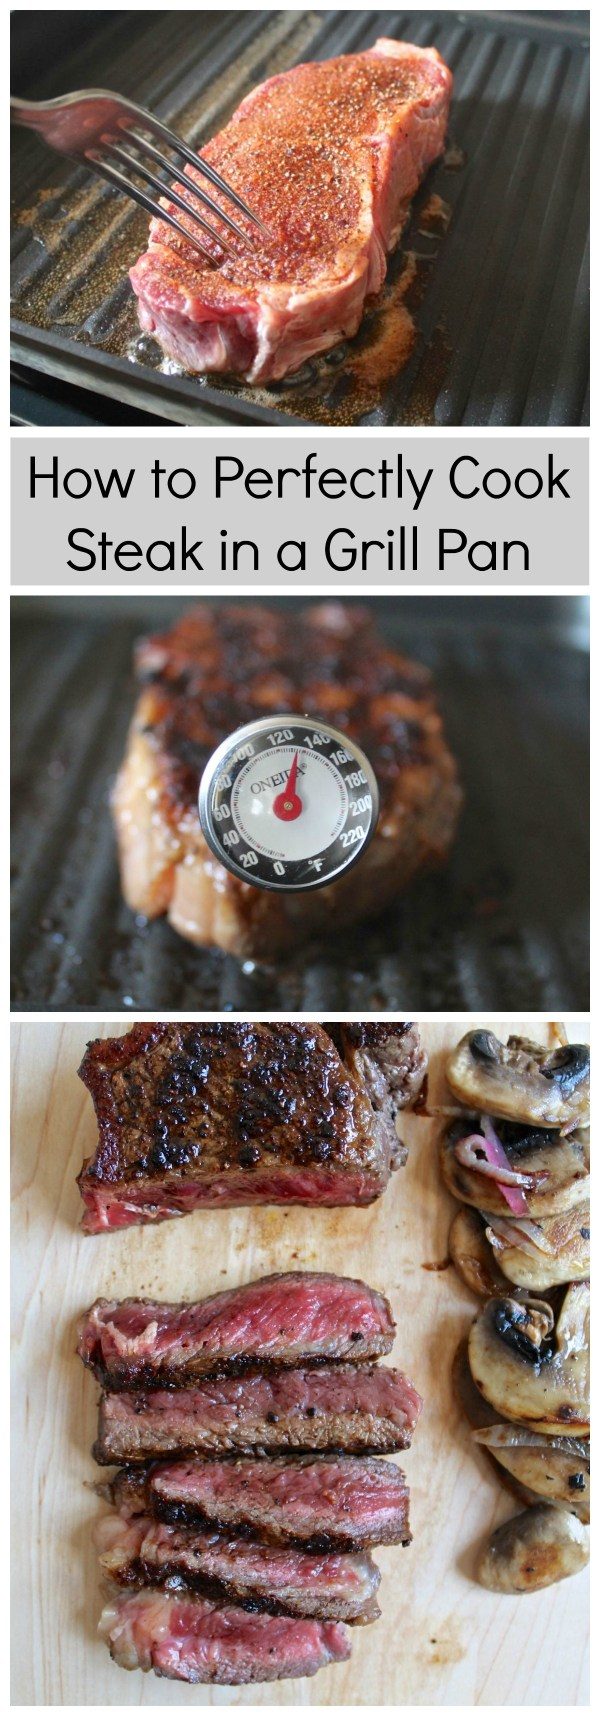 how to cook sirloin steak in a grill pan